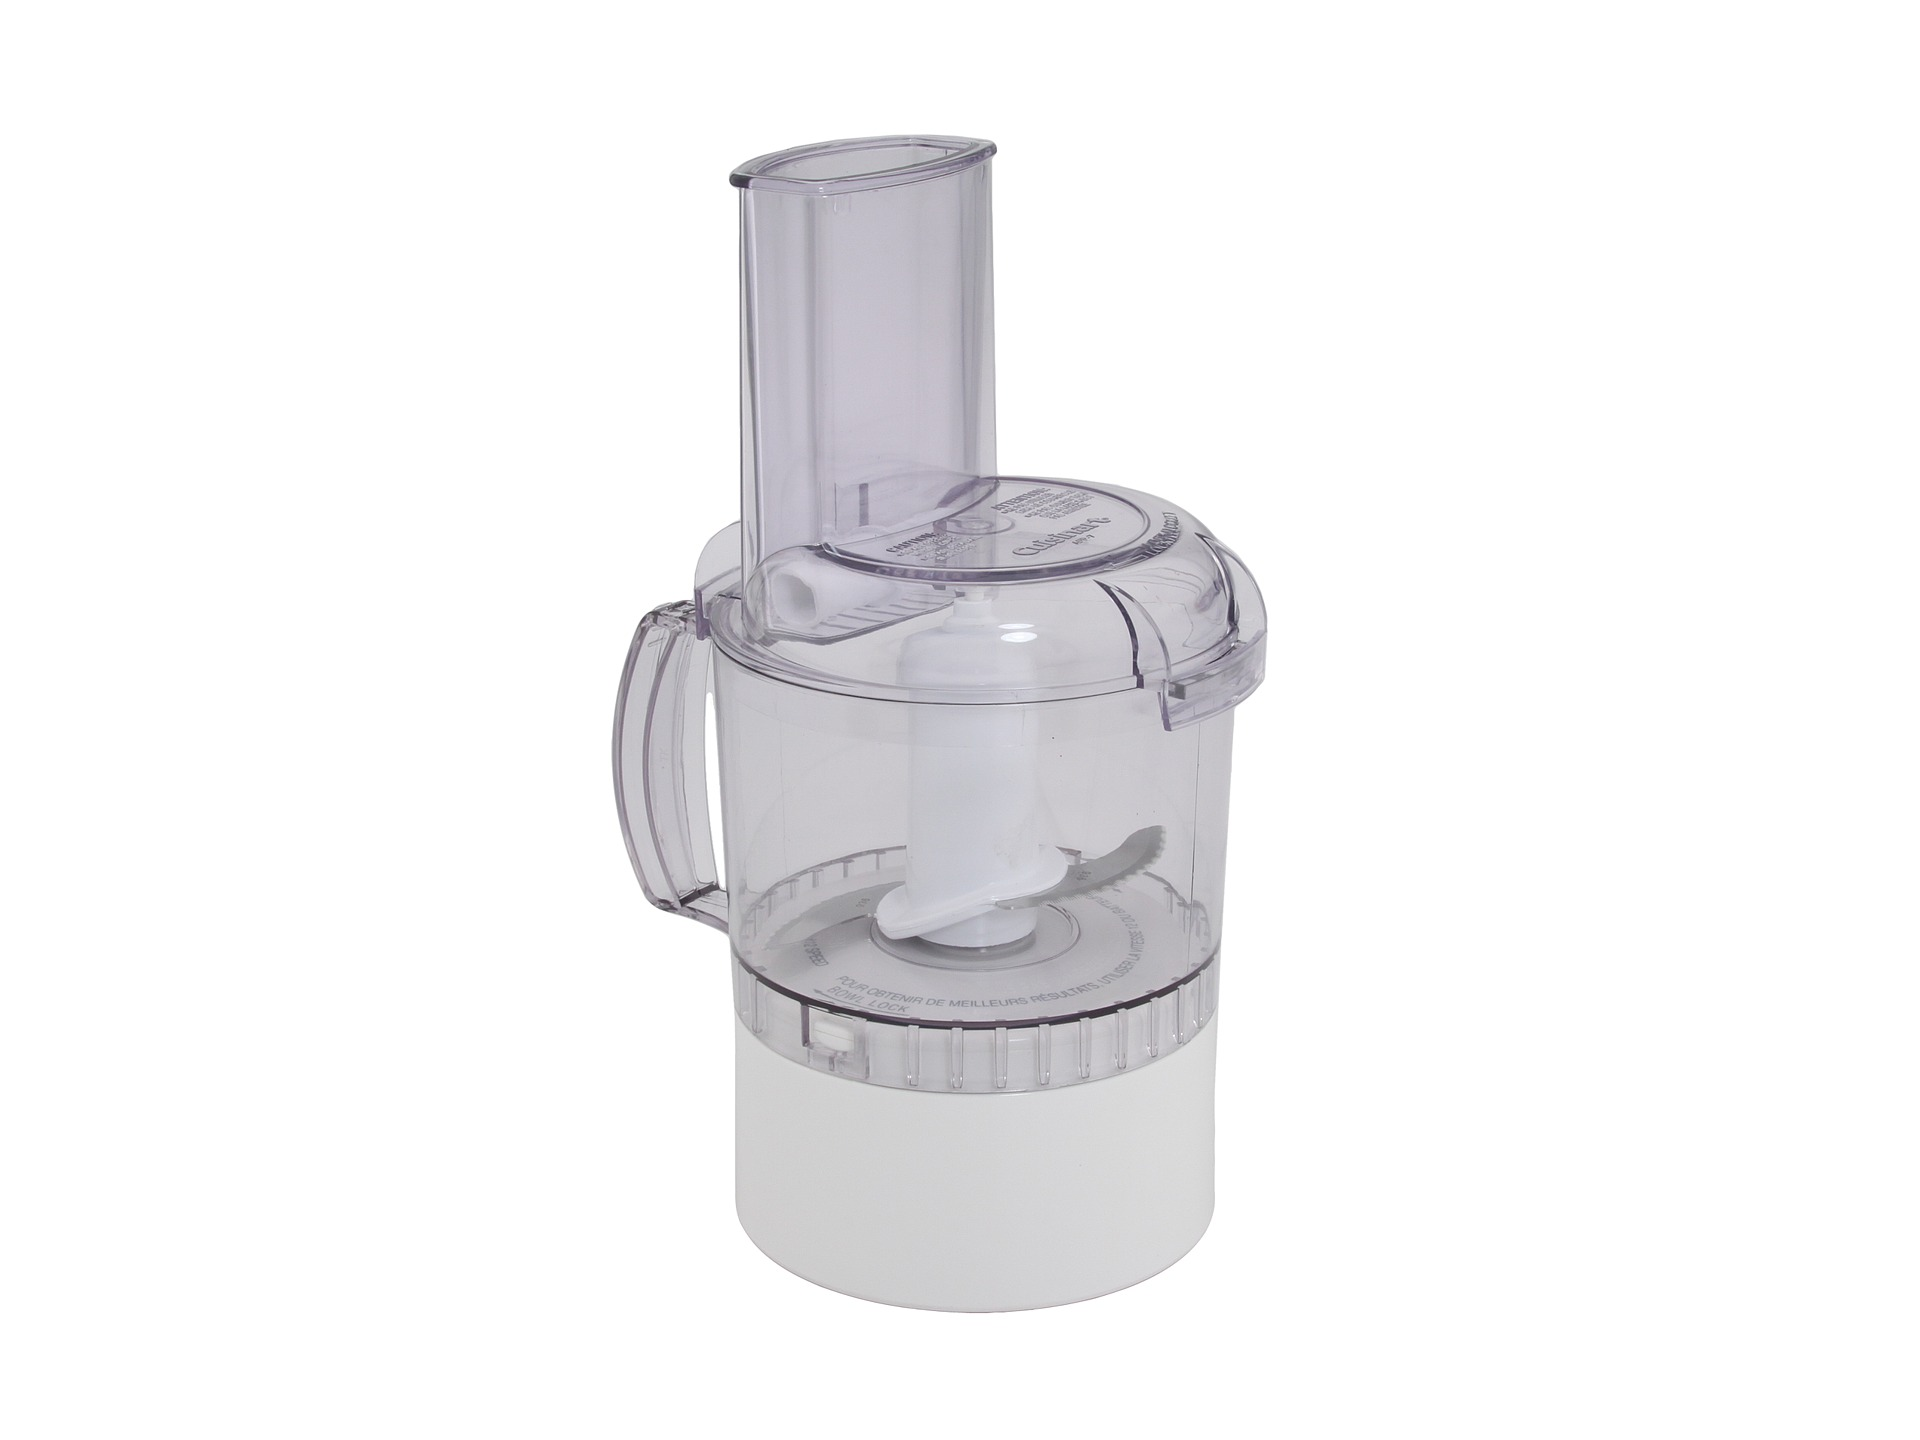 Cuisinart Sm Fp Food Processor Stand Mixer Attachment